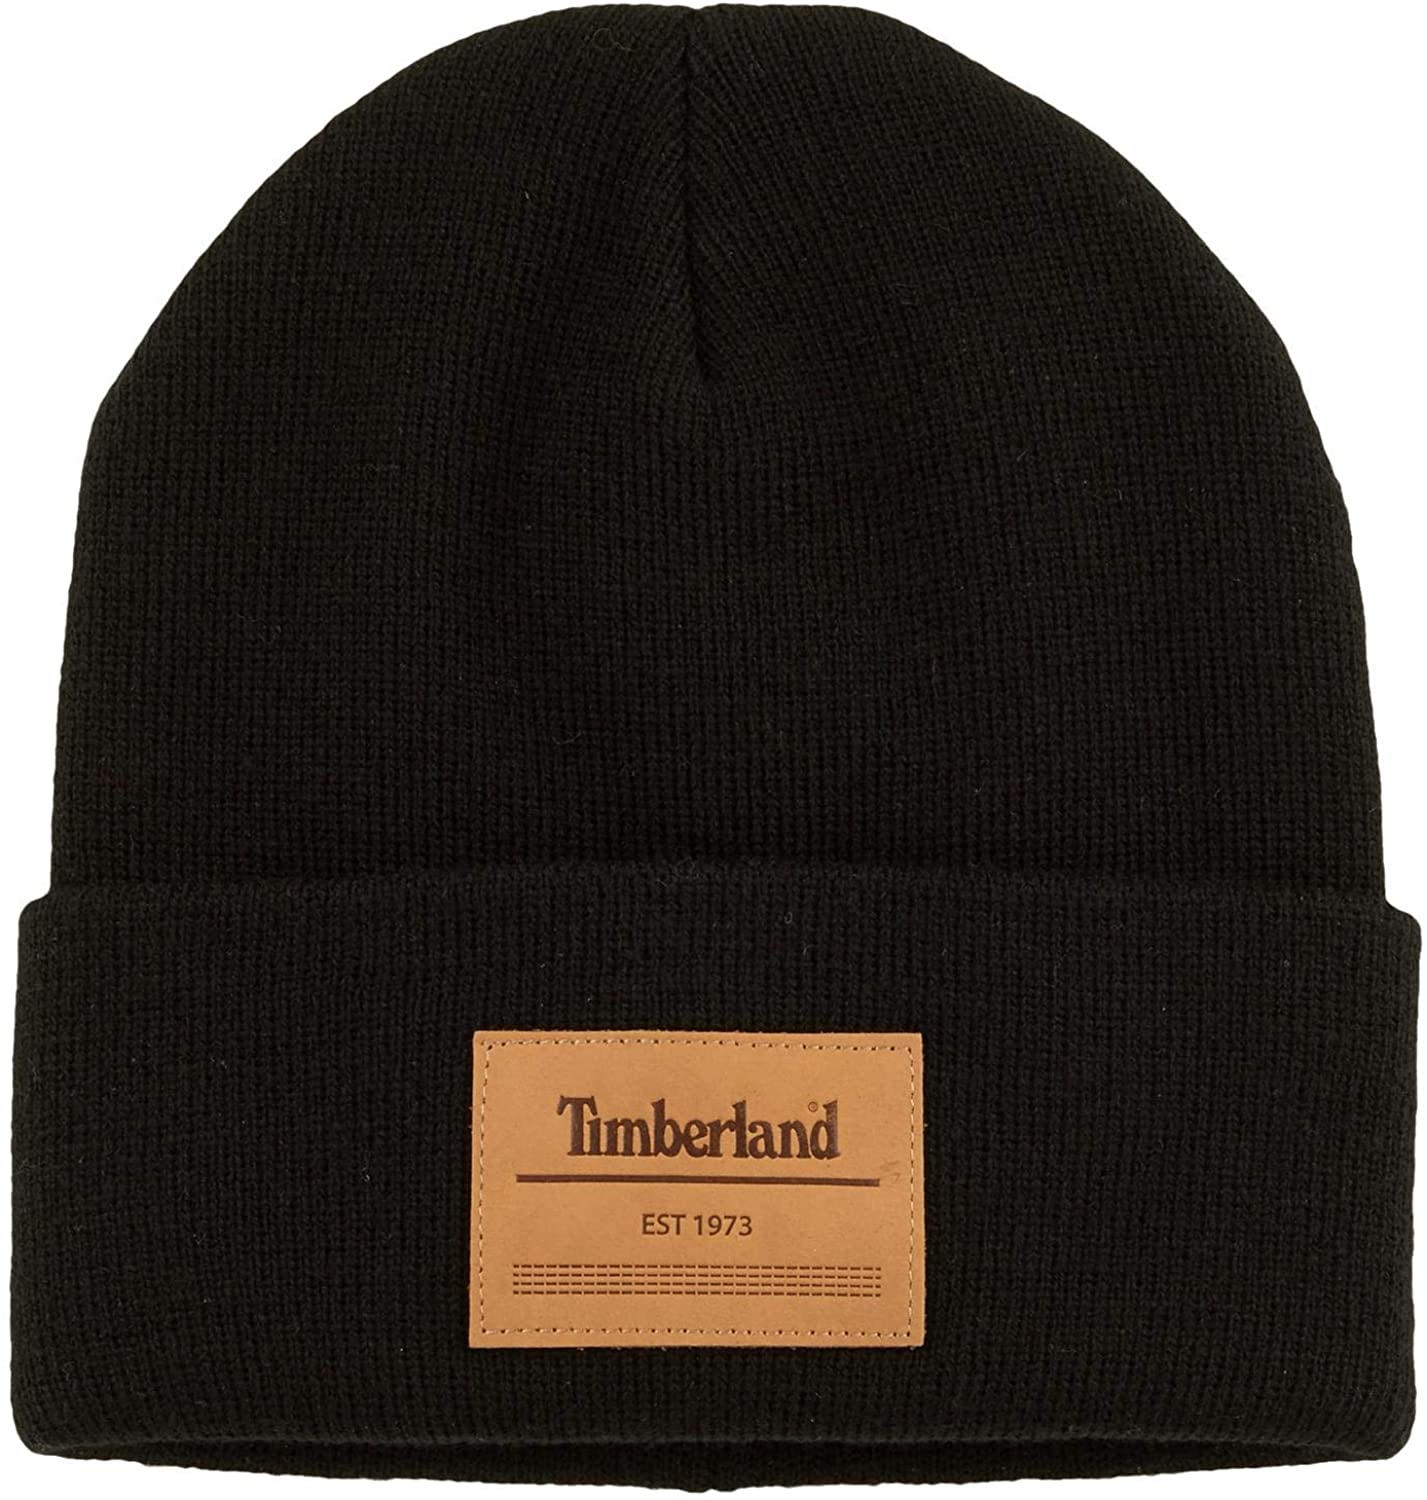 Timberland Men`s Heat Retention Watch Cap Knit Beanie with Leather ...